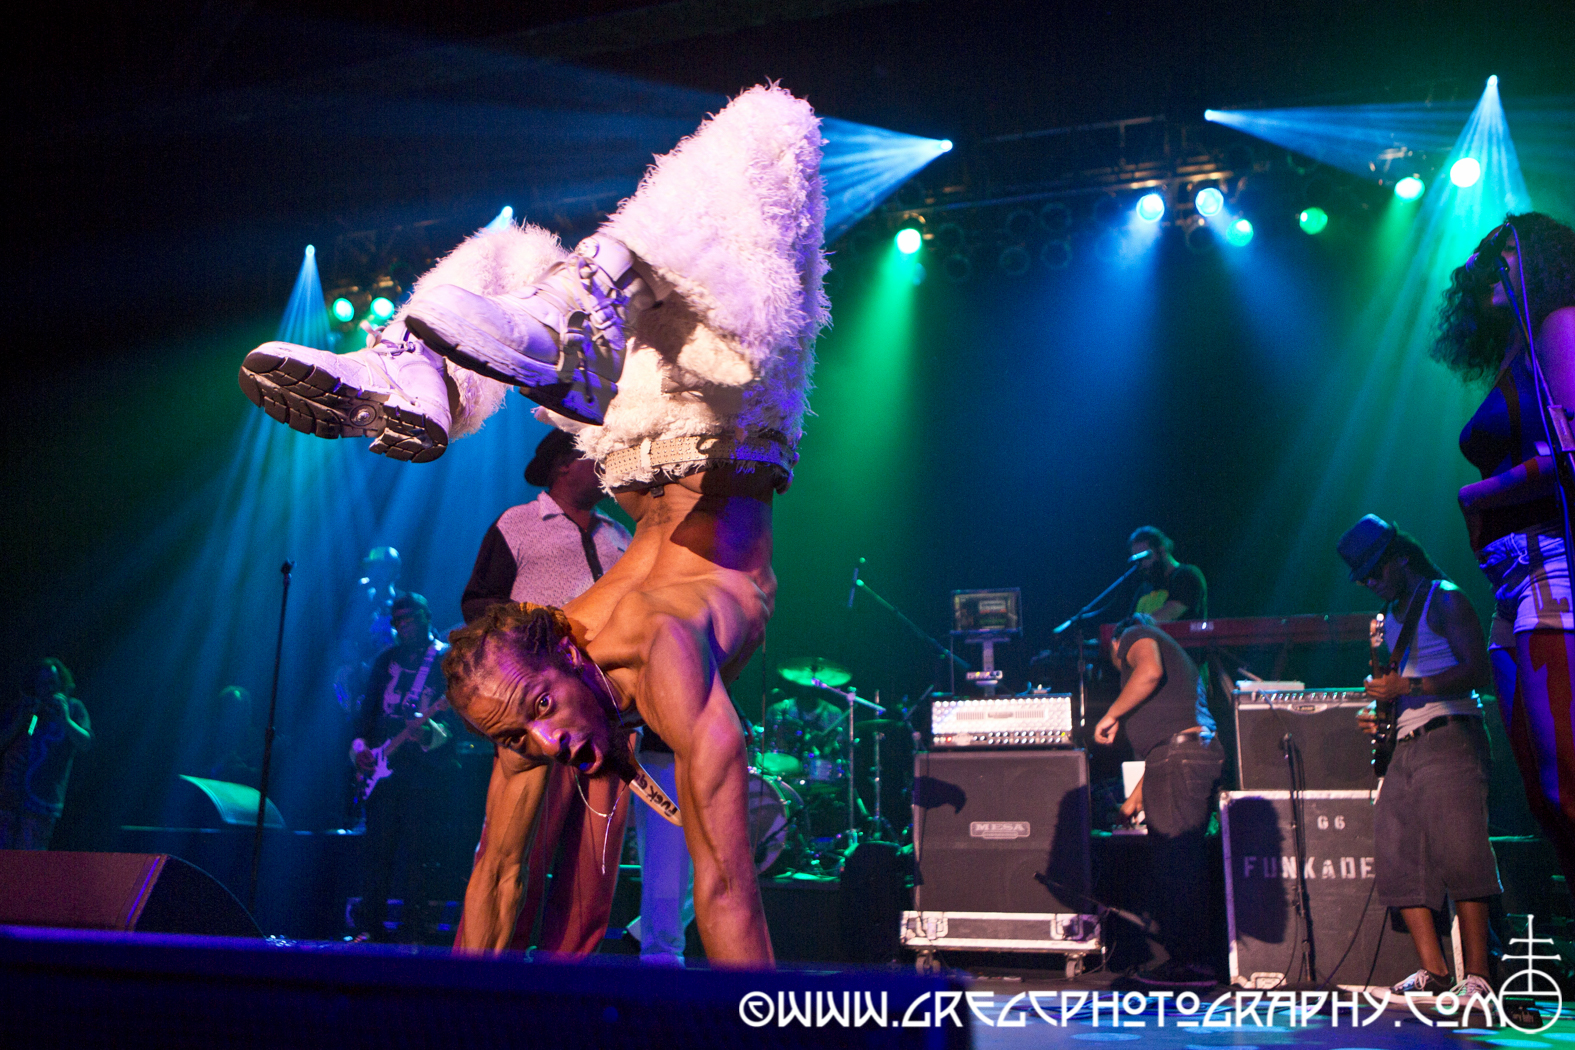 George Clinton and Parliament Funkadelic_38_20150719